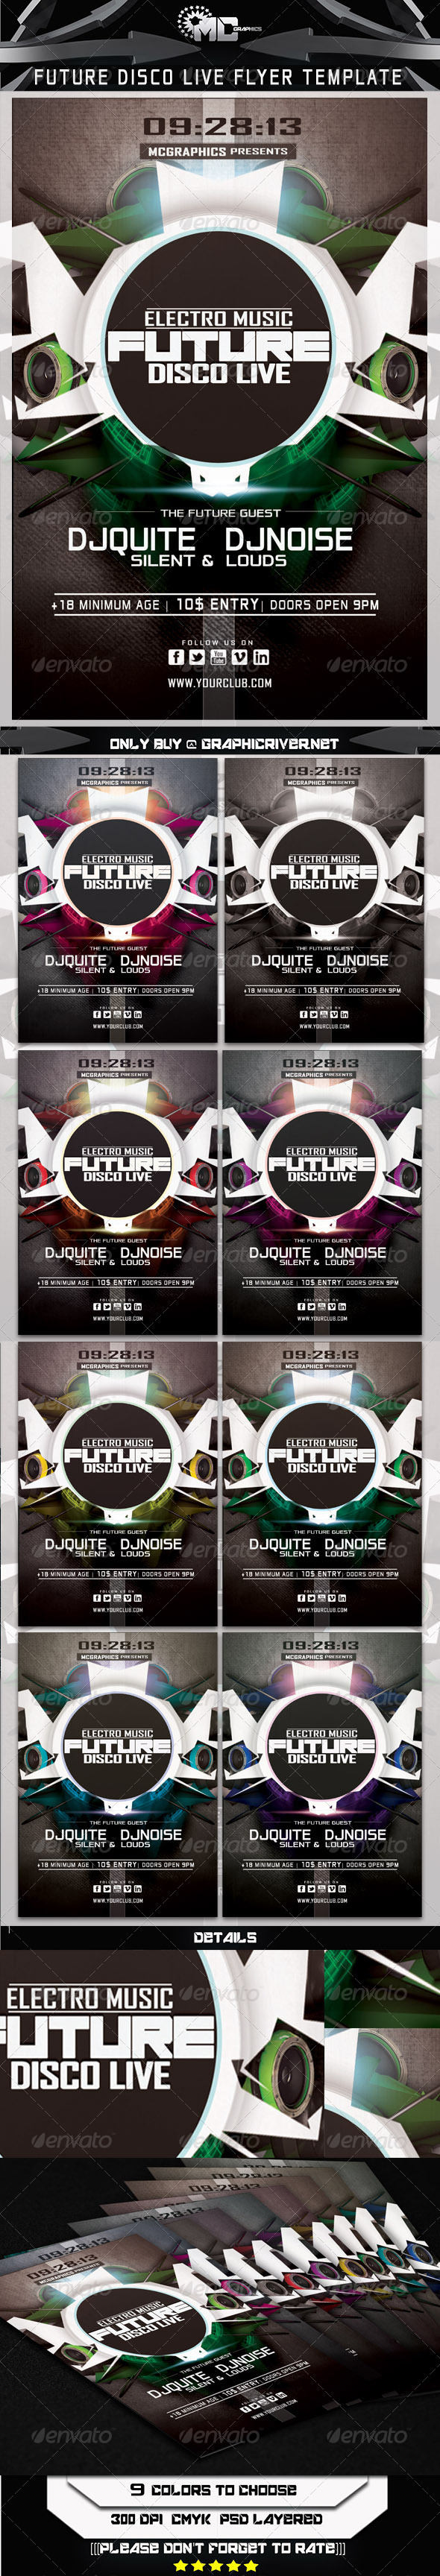 Future Disco Live Flyer Tempate - Print Templates